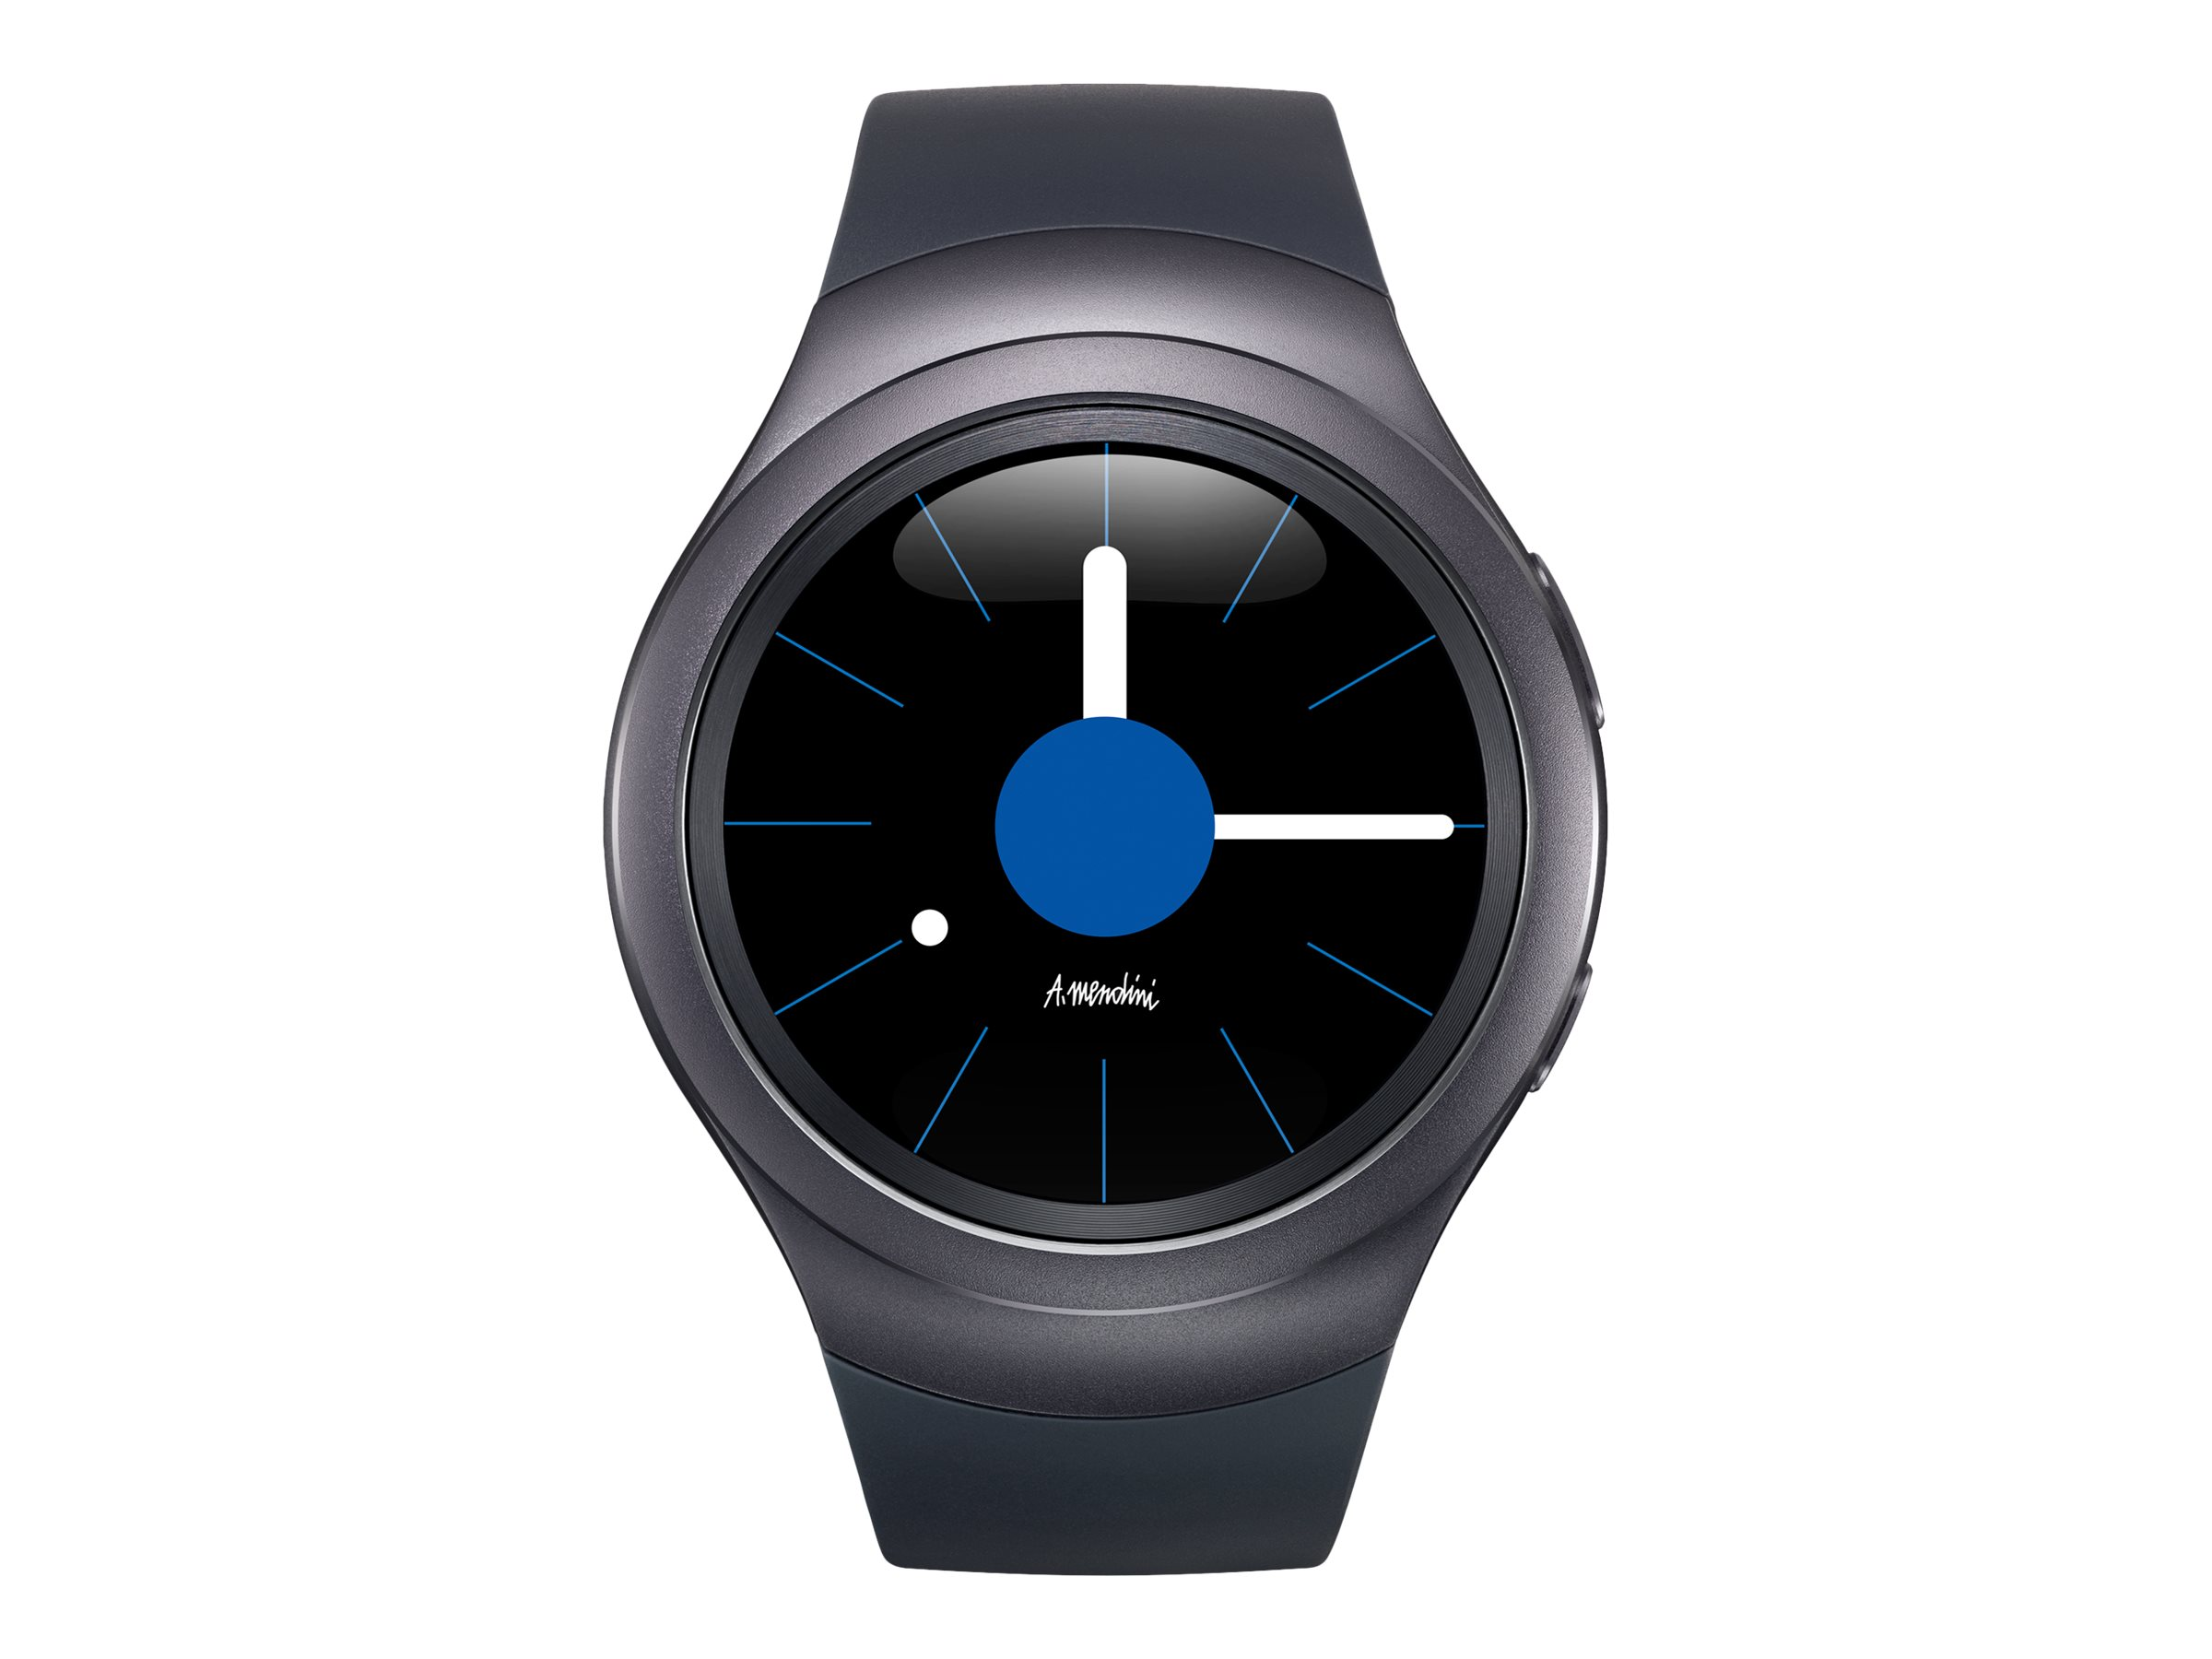 Samsung Gear S2 - dark gray - smart watch with strap - 4 GB - AT&T